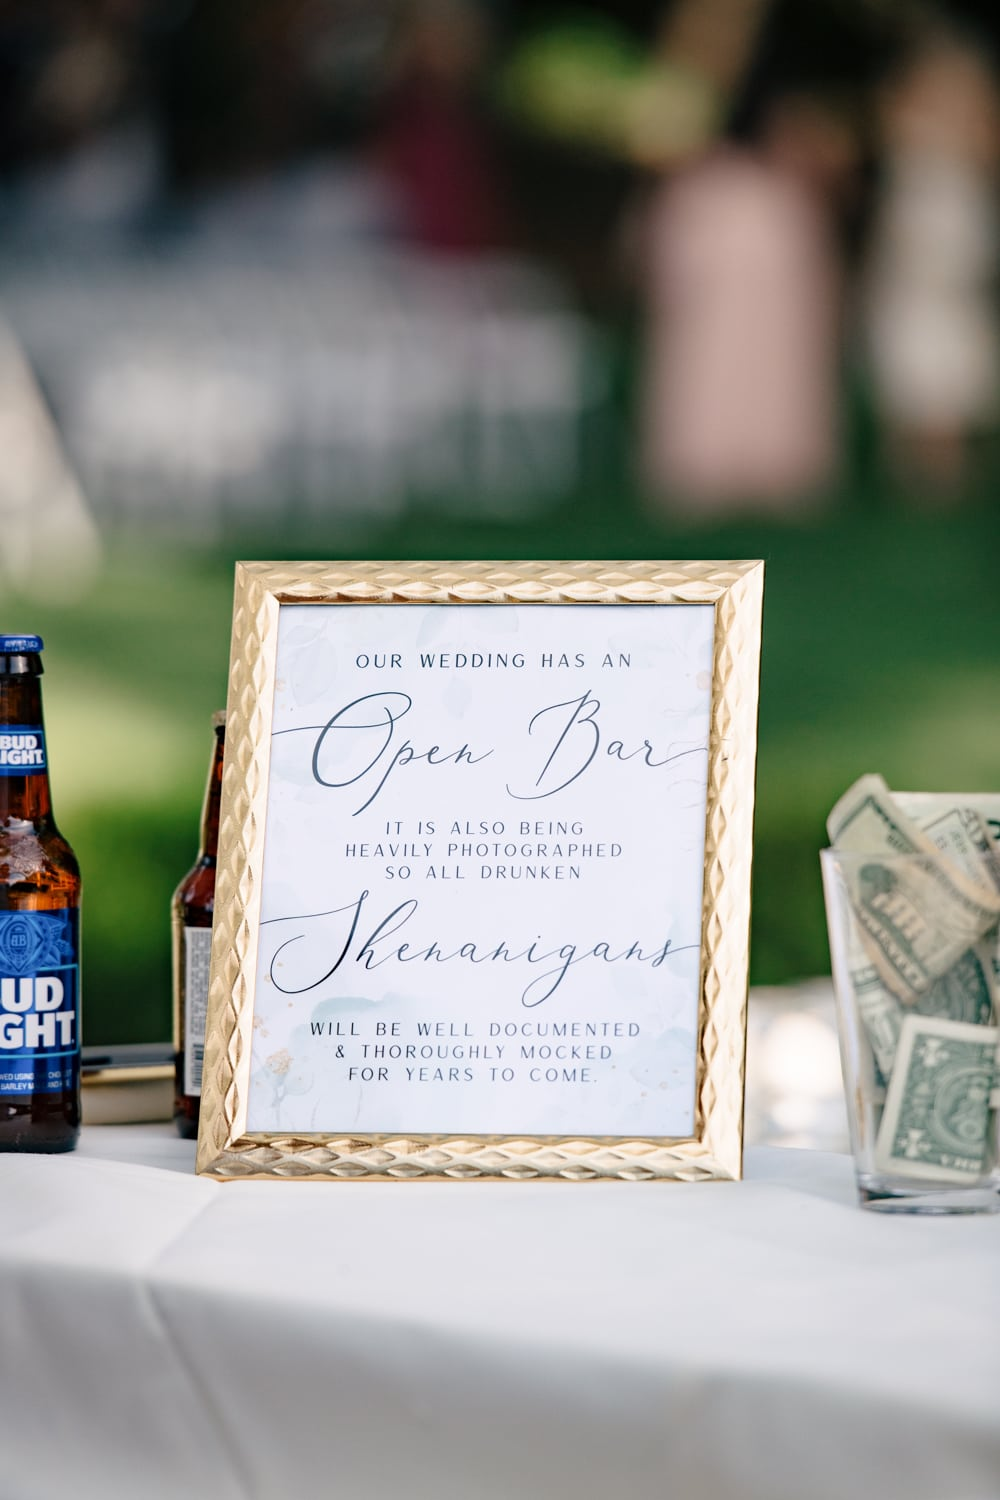 Open bar wedding sign at The Stone House in Temecula